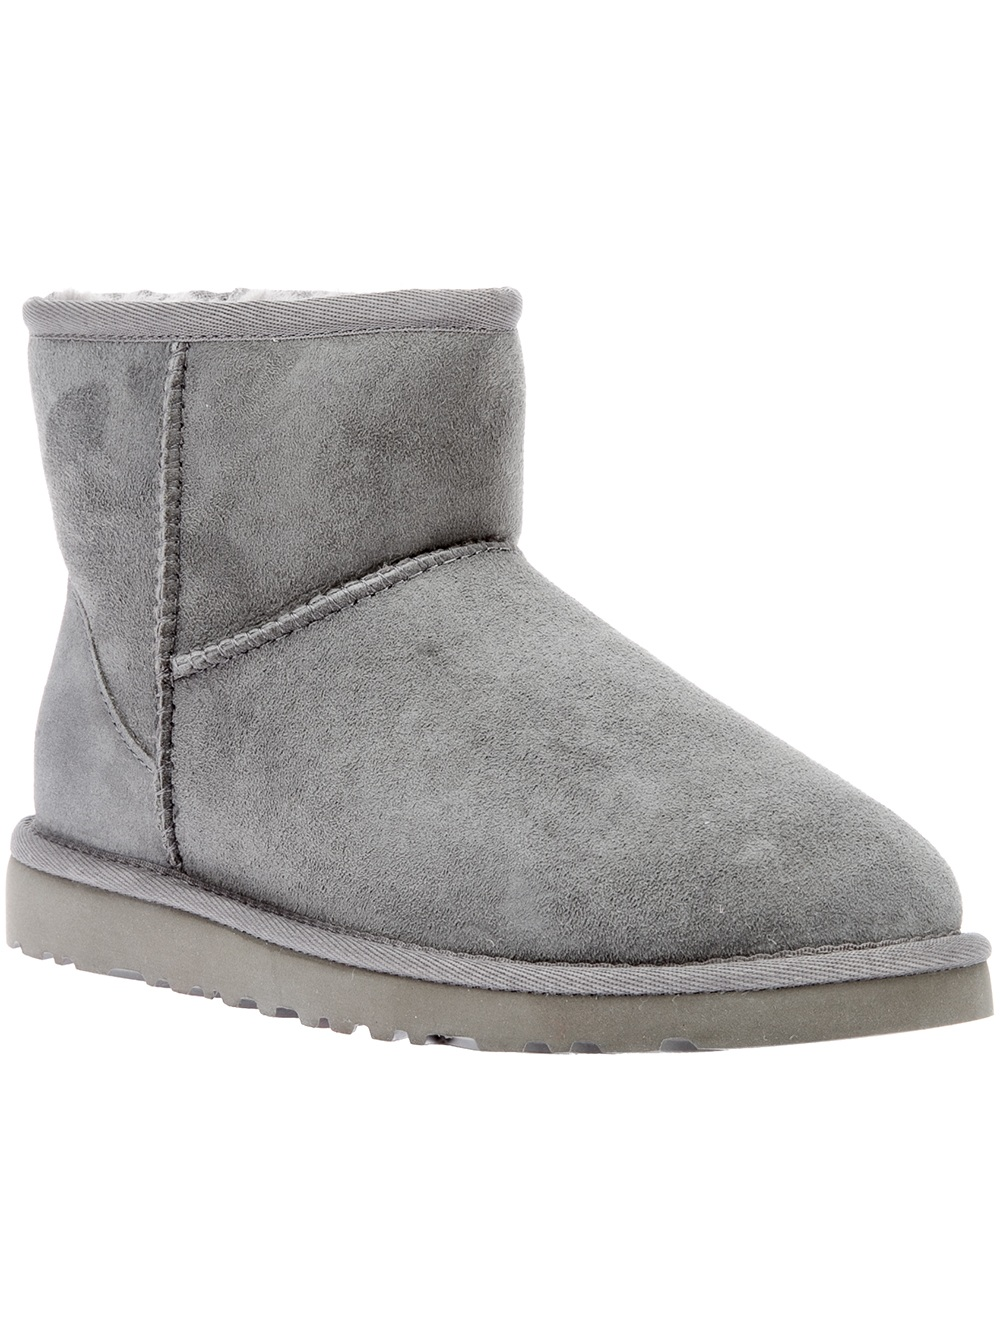 ugg shearling boot in gray grey lyst